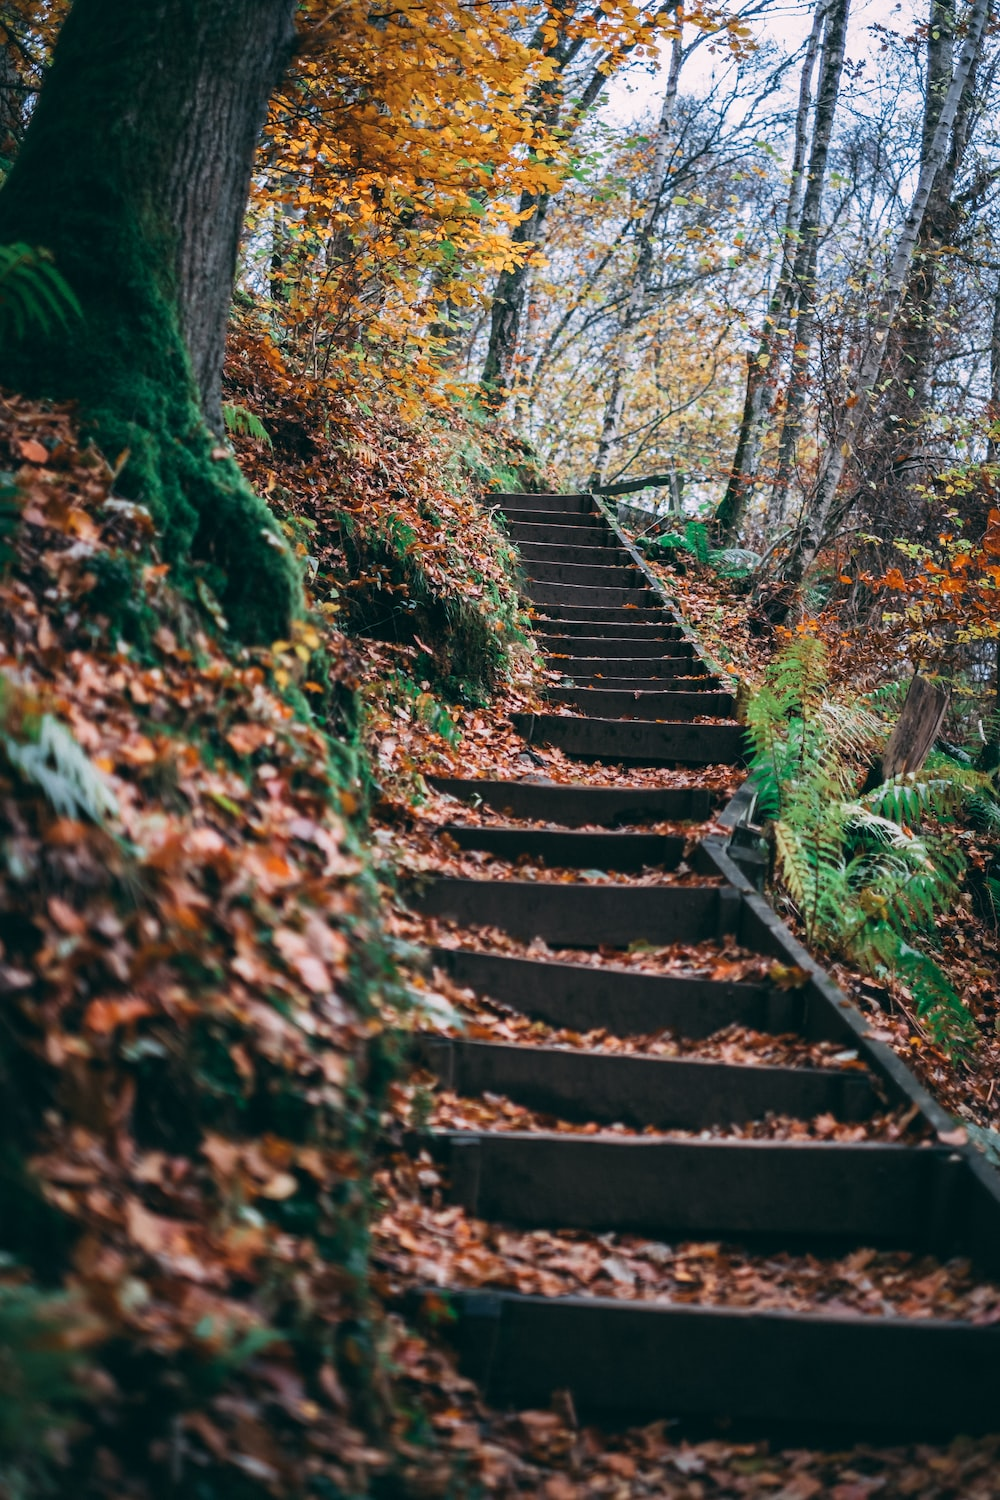 fallen leaves on concrete stairs